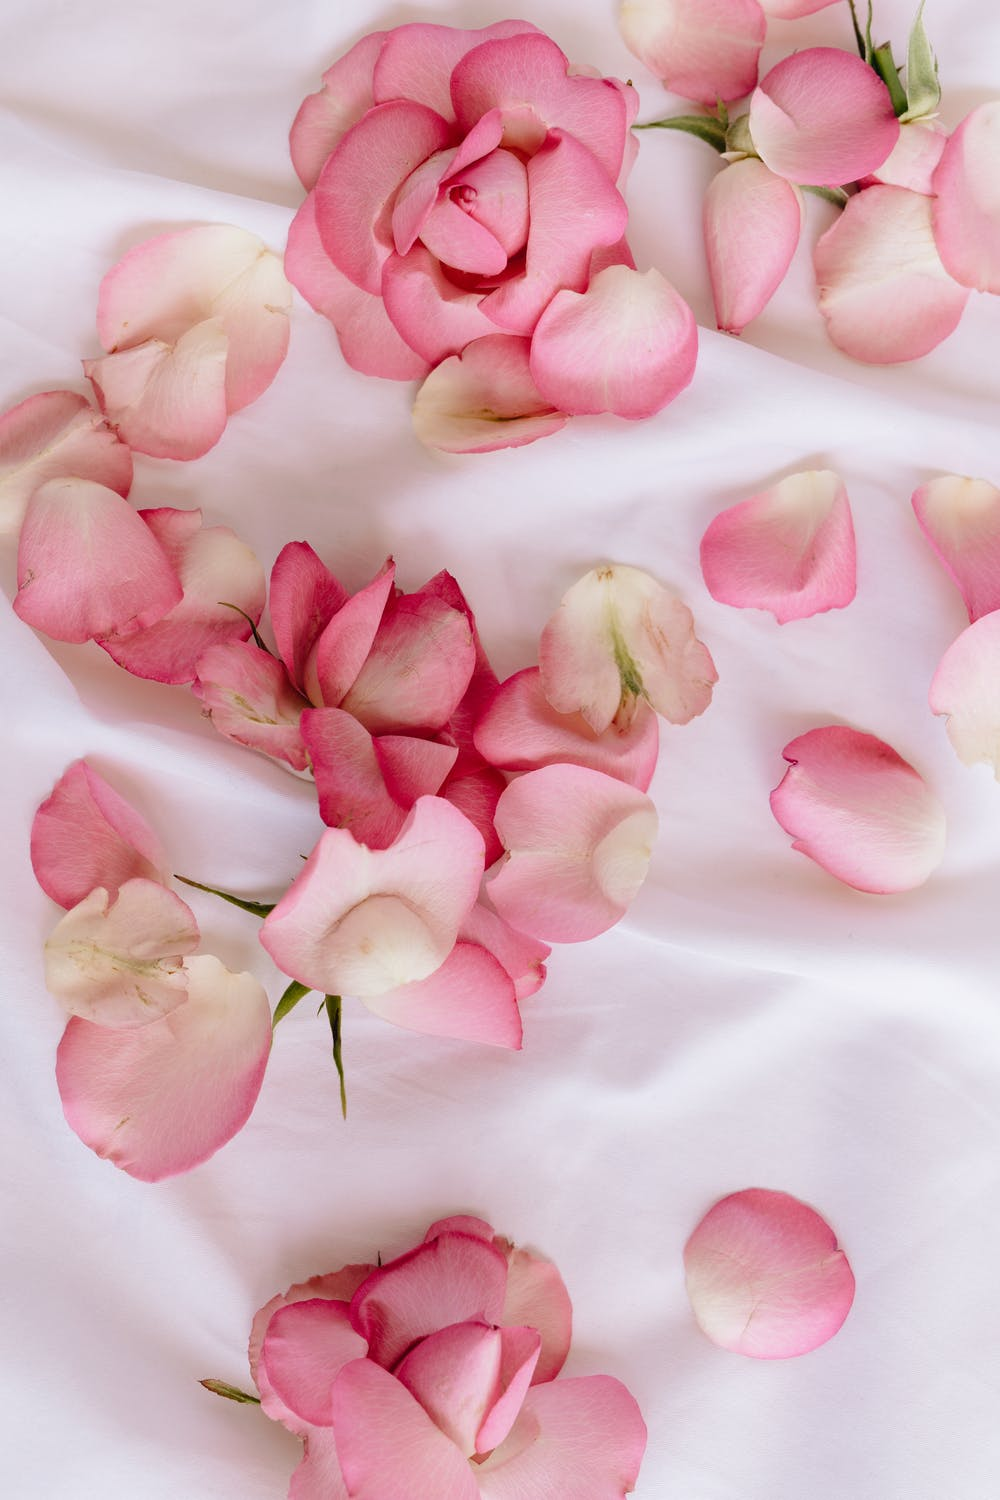 Pink rose petals iPhone wallpapers, pretty flower wallpapers